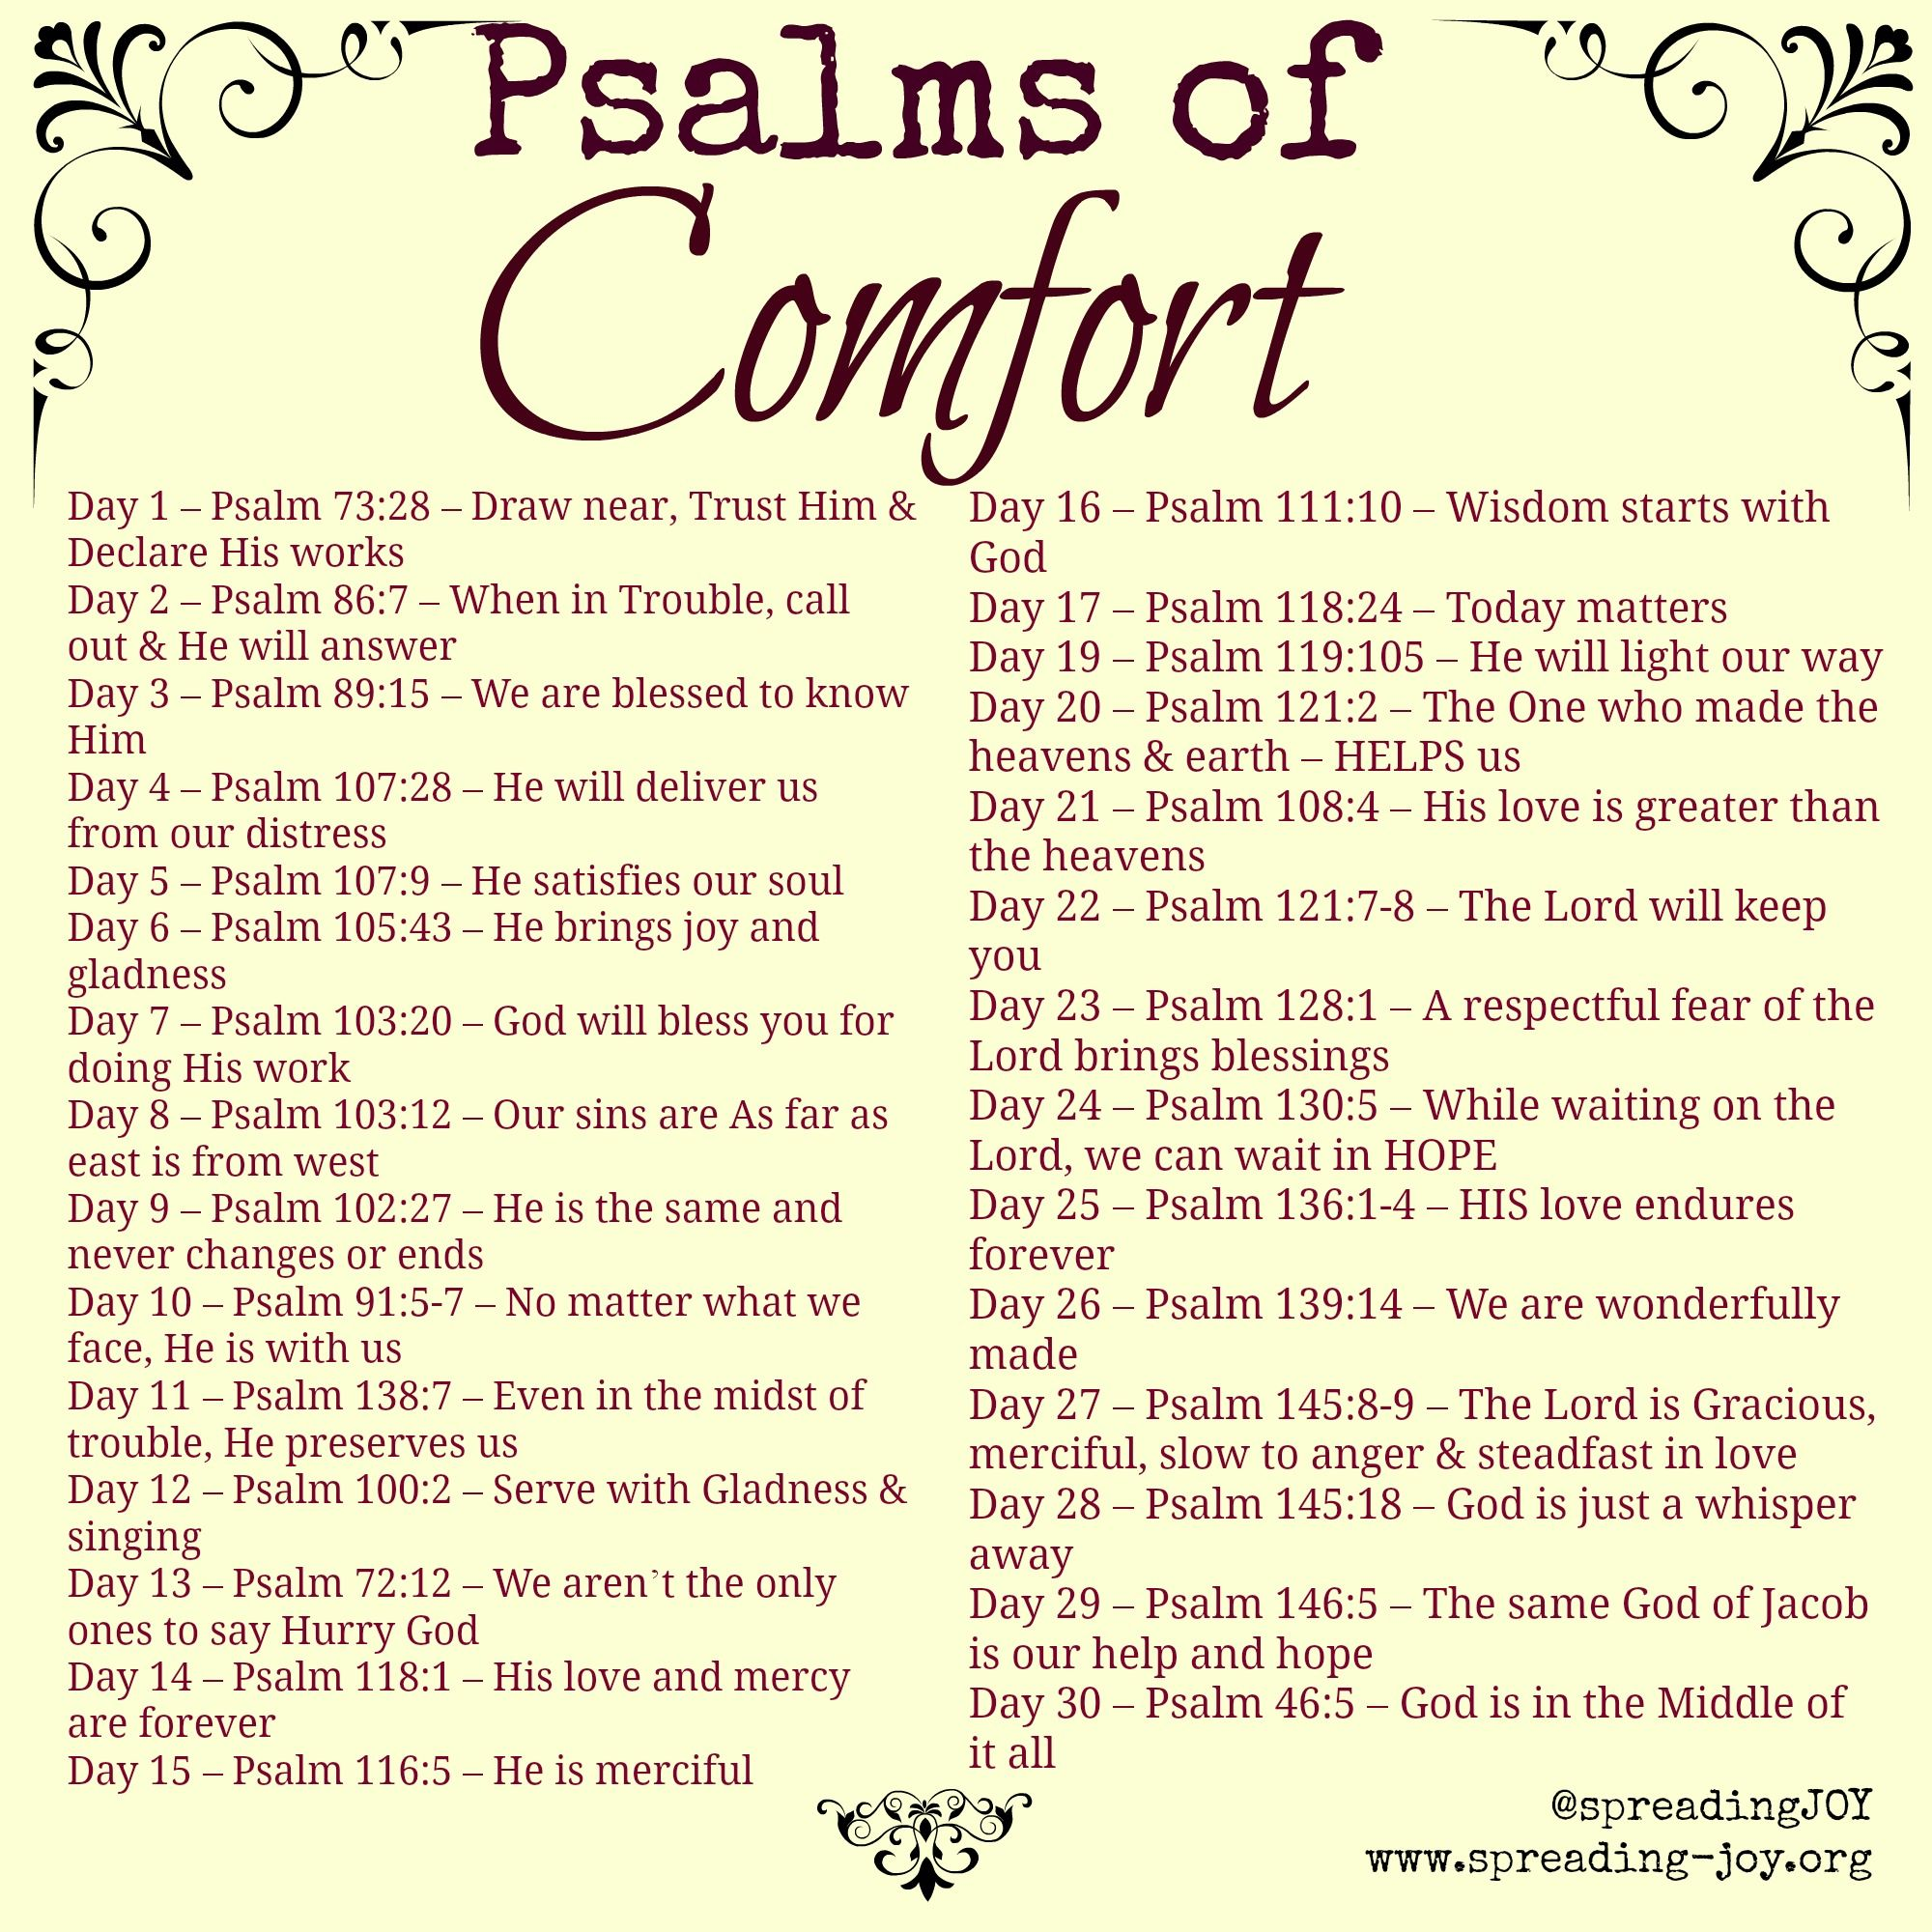 Finding fort in the Psalms Which is your favorite